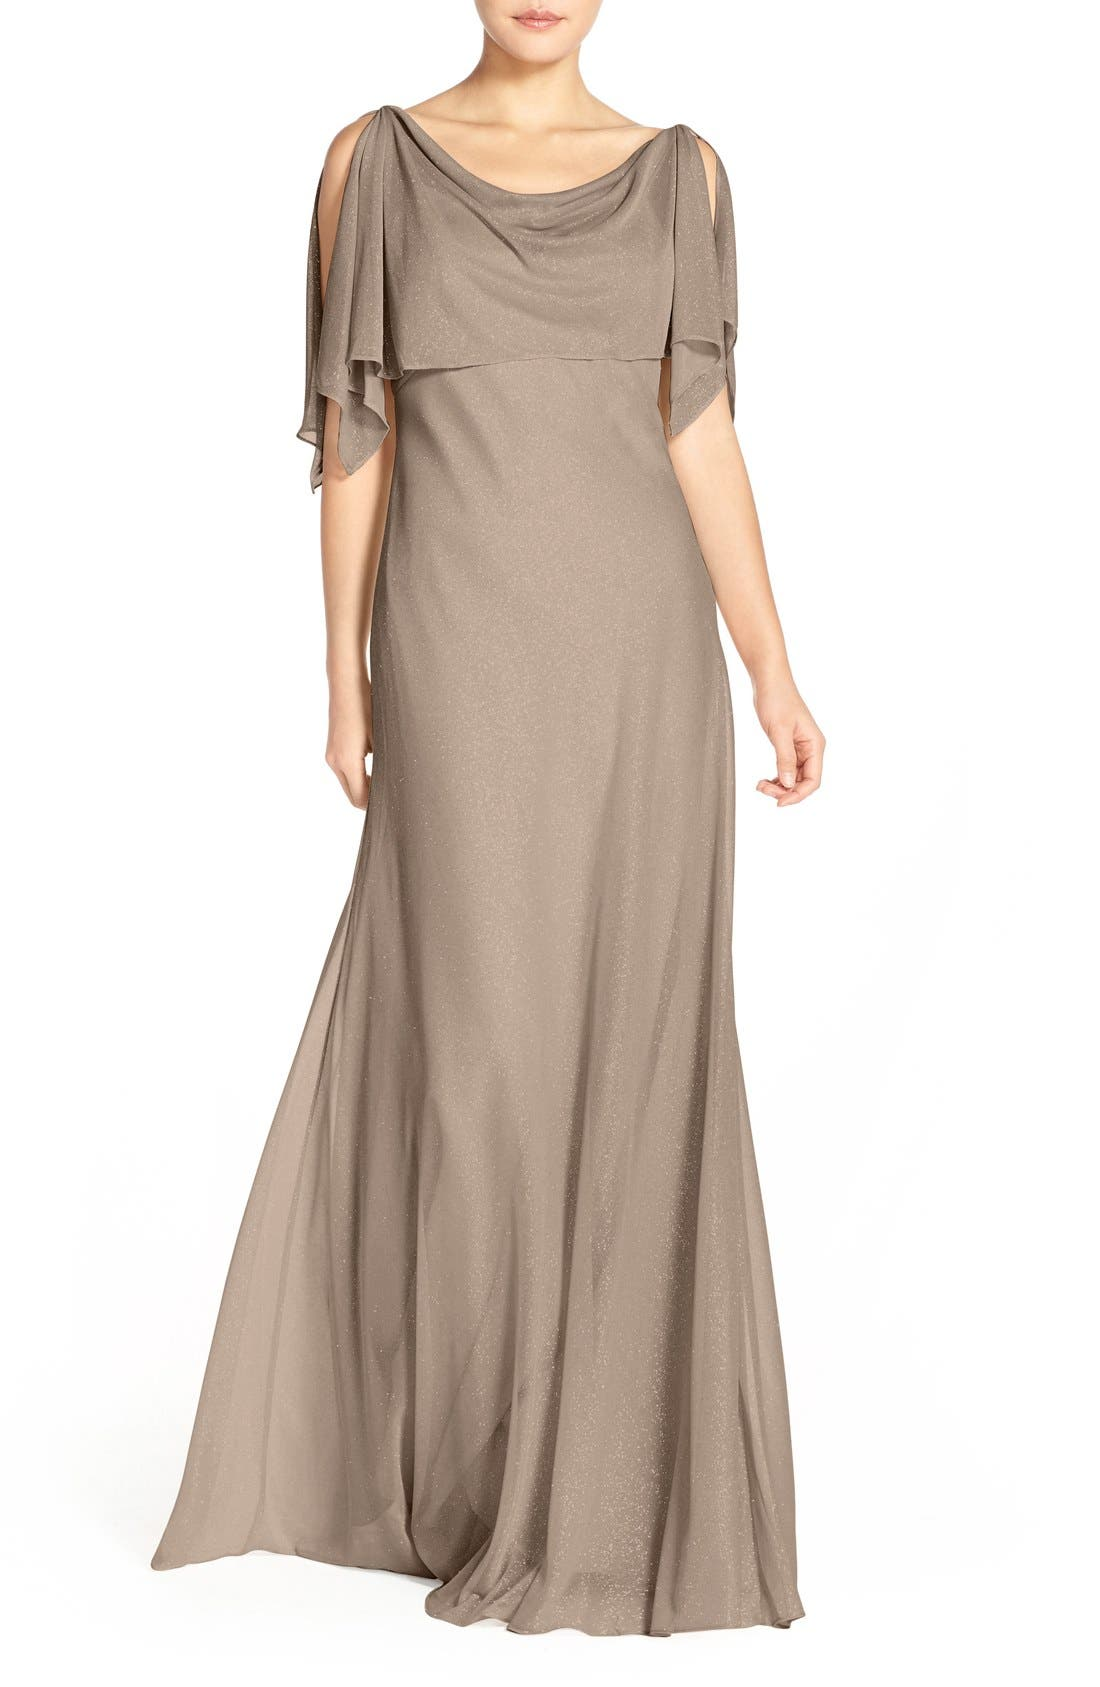 JENNY YOO, Devon Glitter Knit Gown with Detachable Capelet, Main thumbnail 1, color, TAUPE